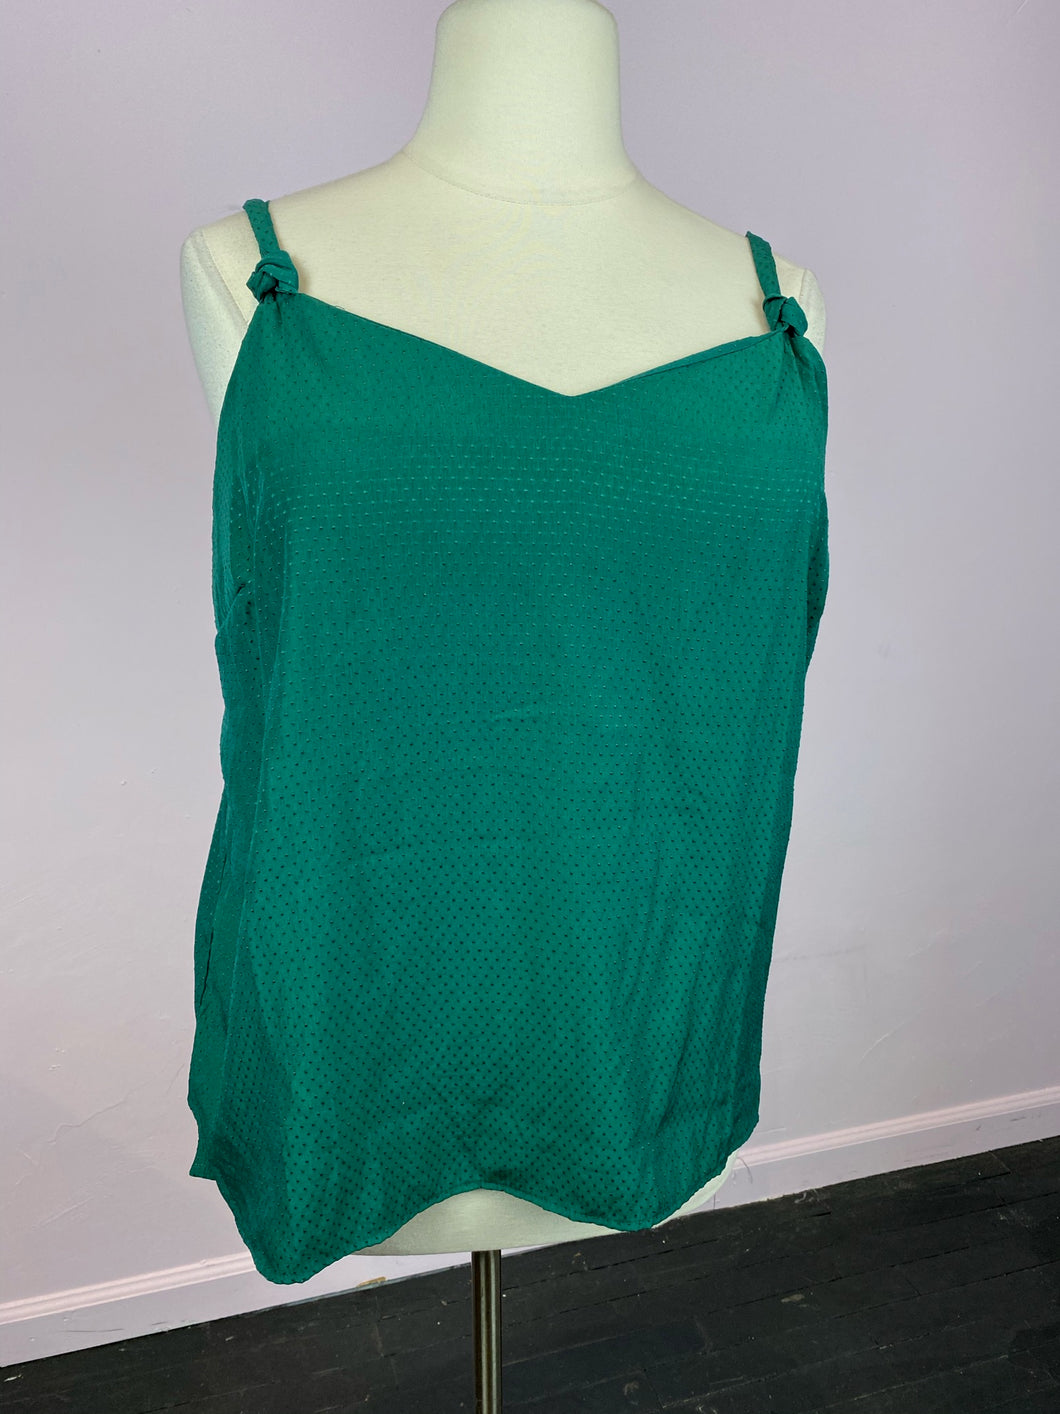 Kelly Green Swiss Polka Dot Print Tank by Old Navy, Size 2X